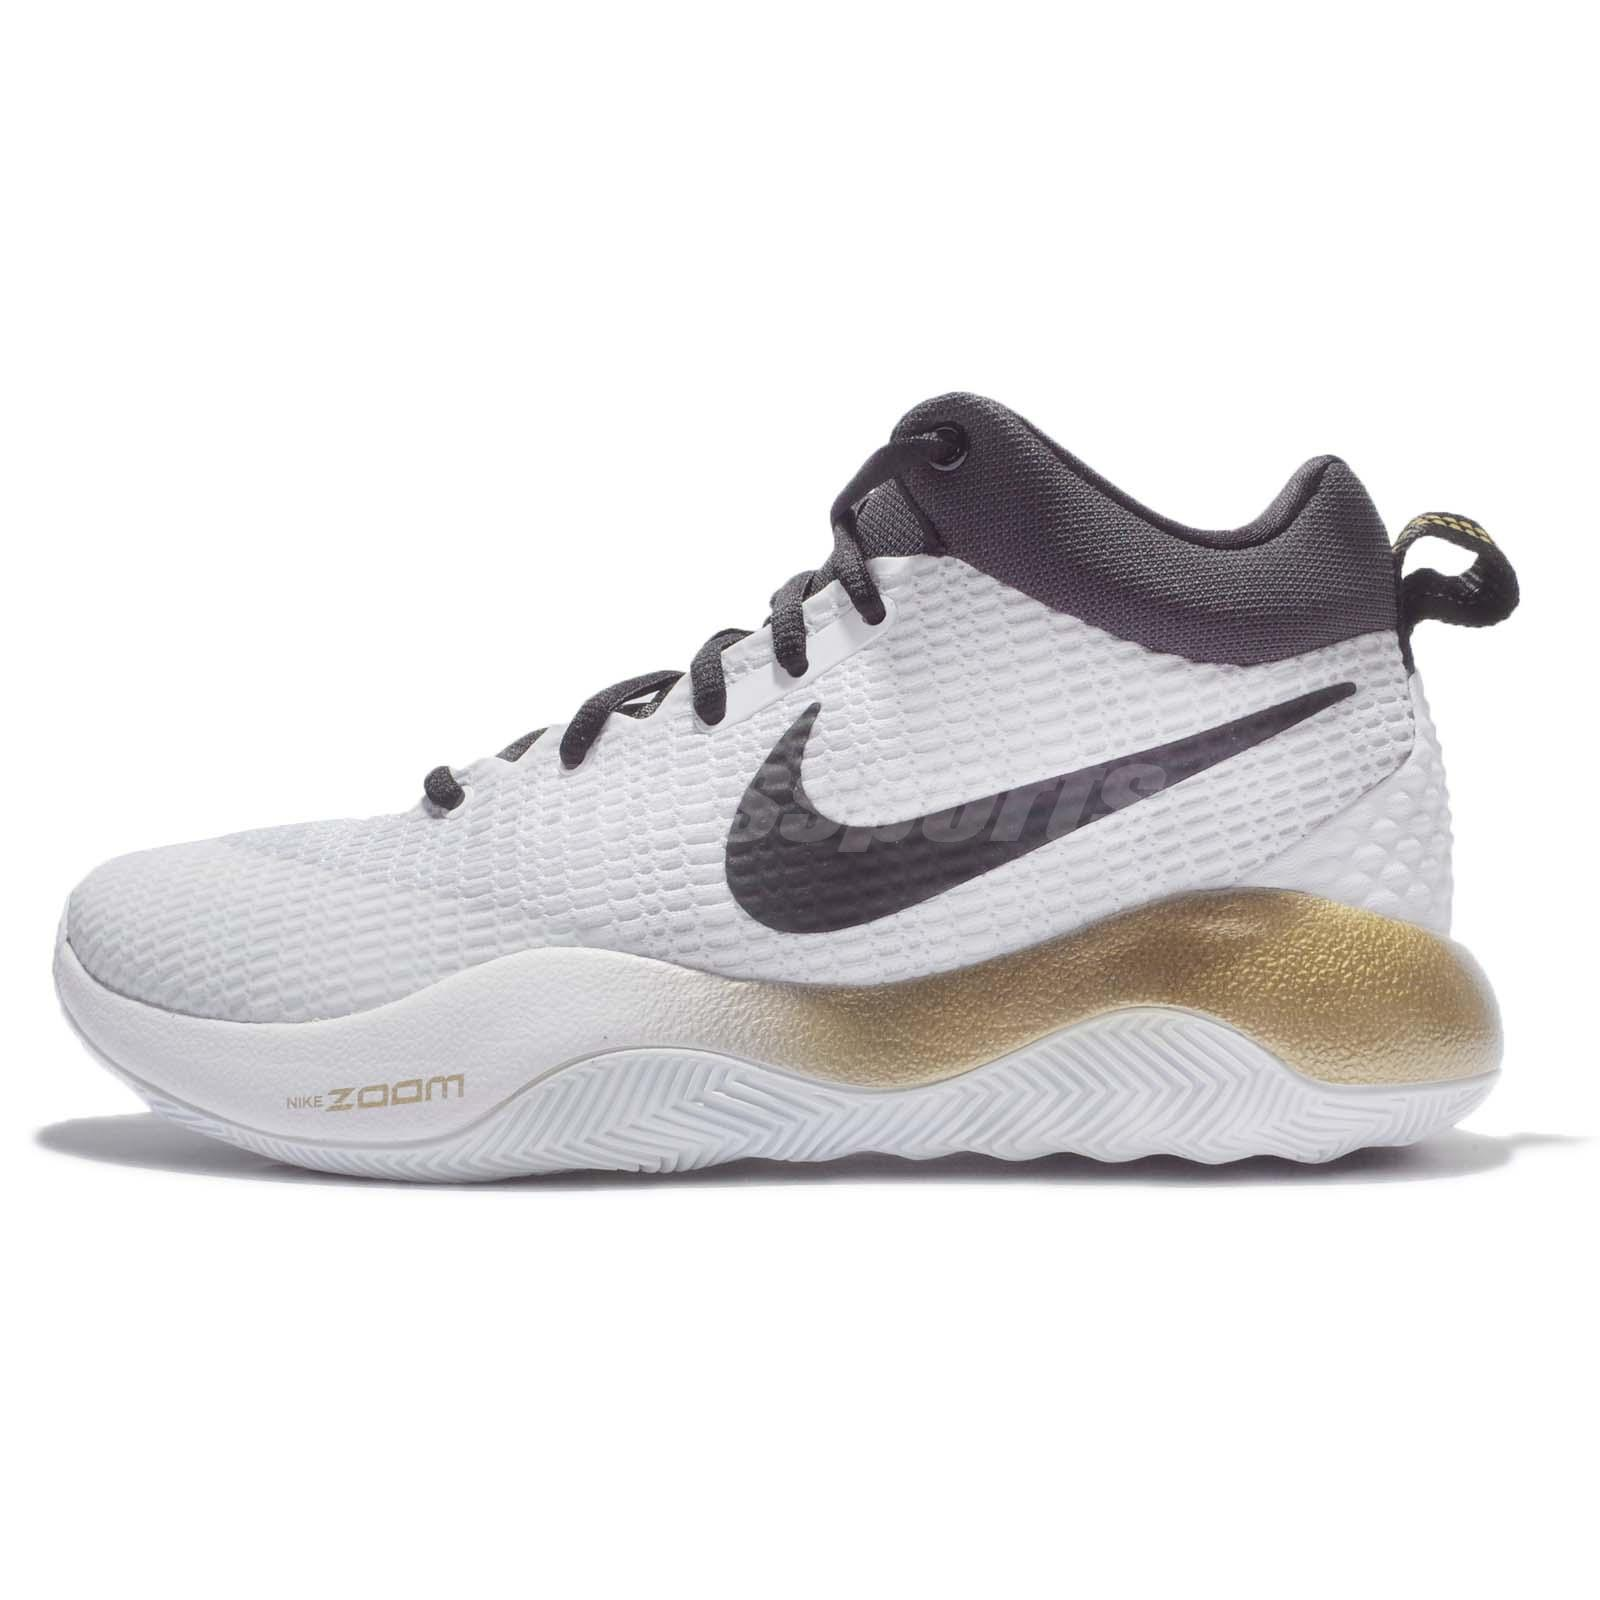 Nike Zoom Rev Ep White Metallic Gold Men Basketball Shoes Trainers